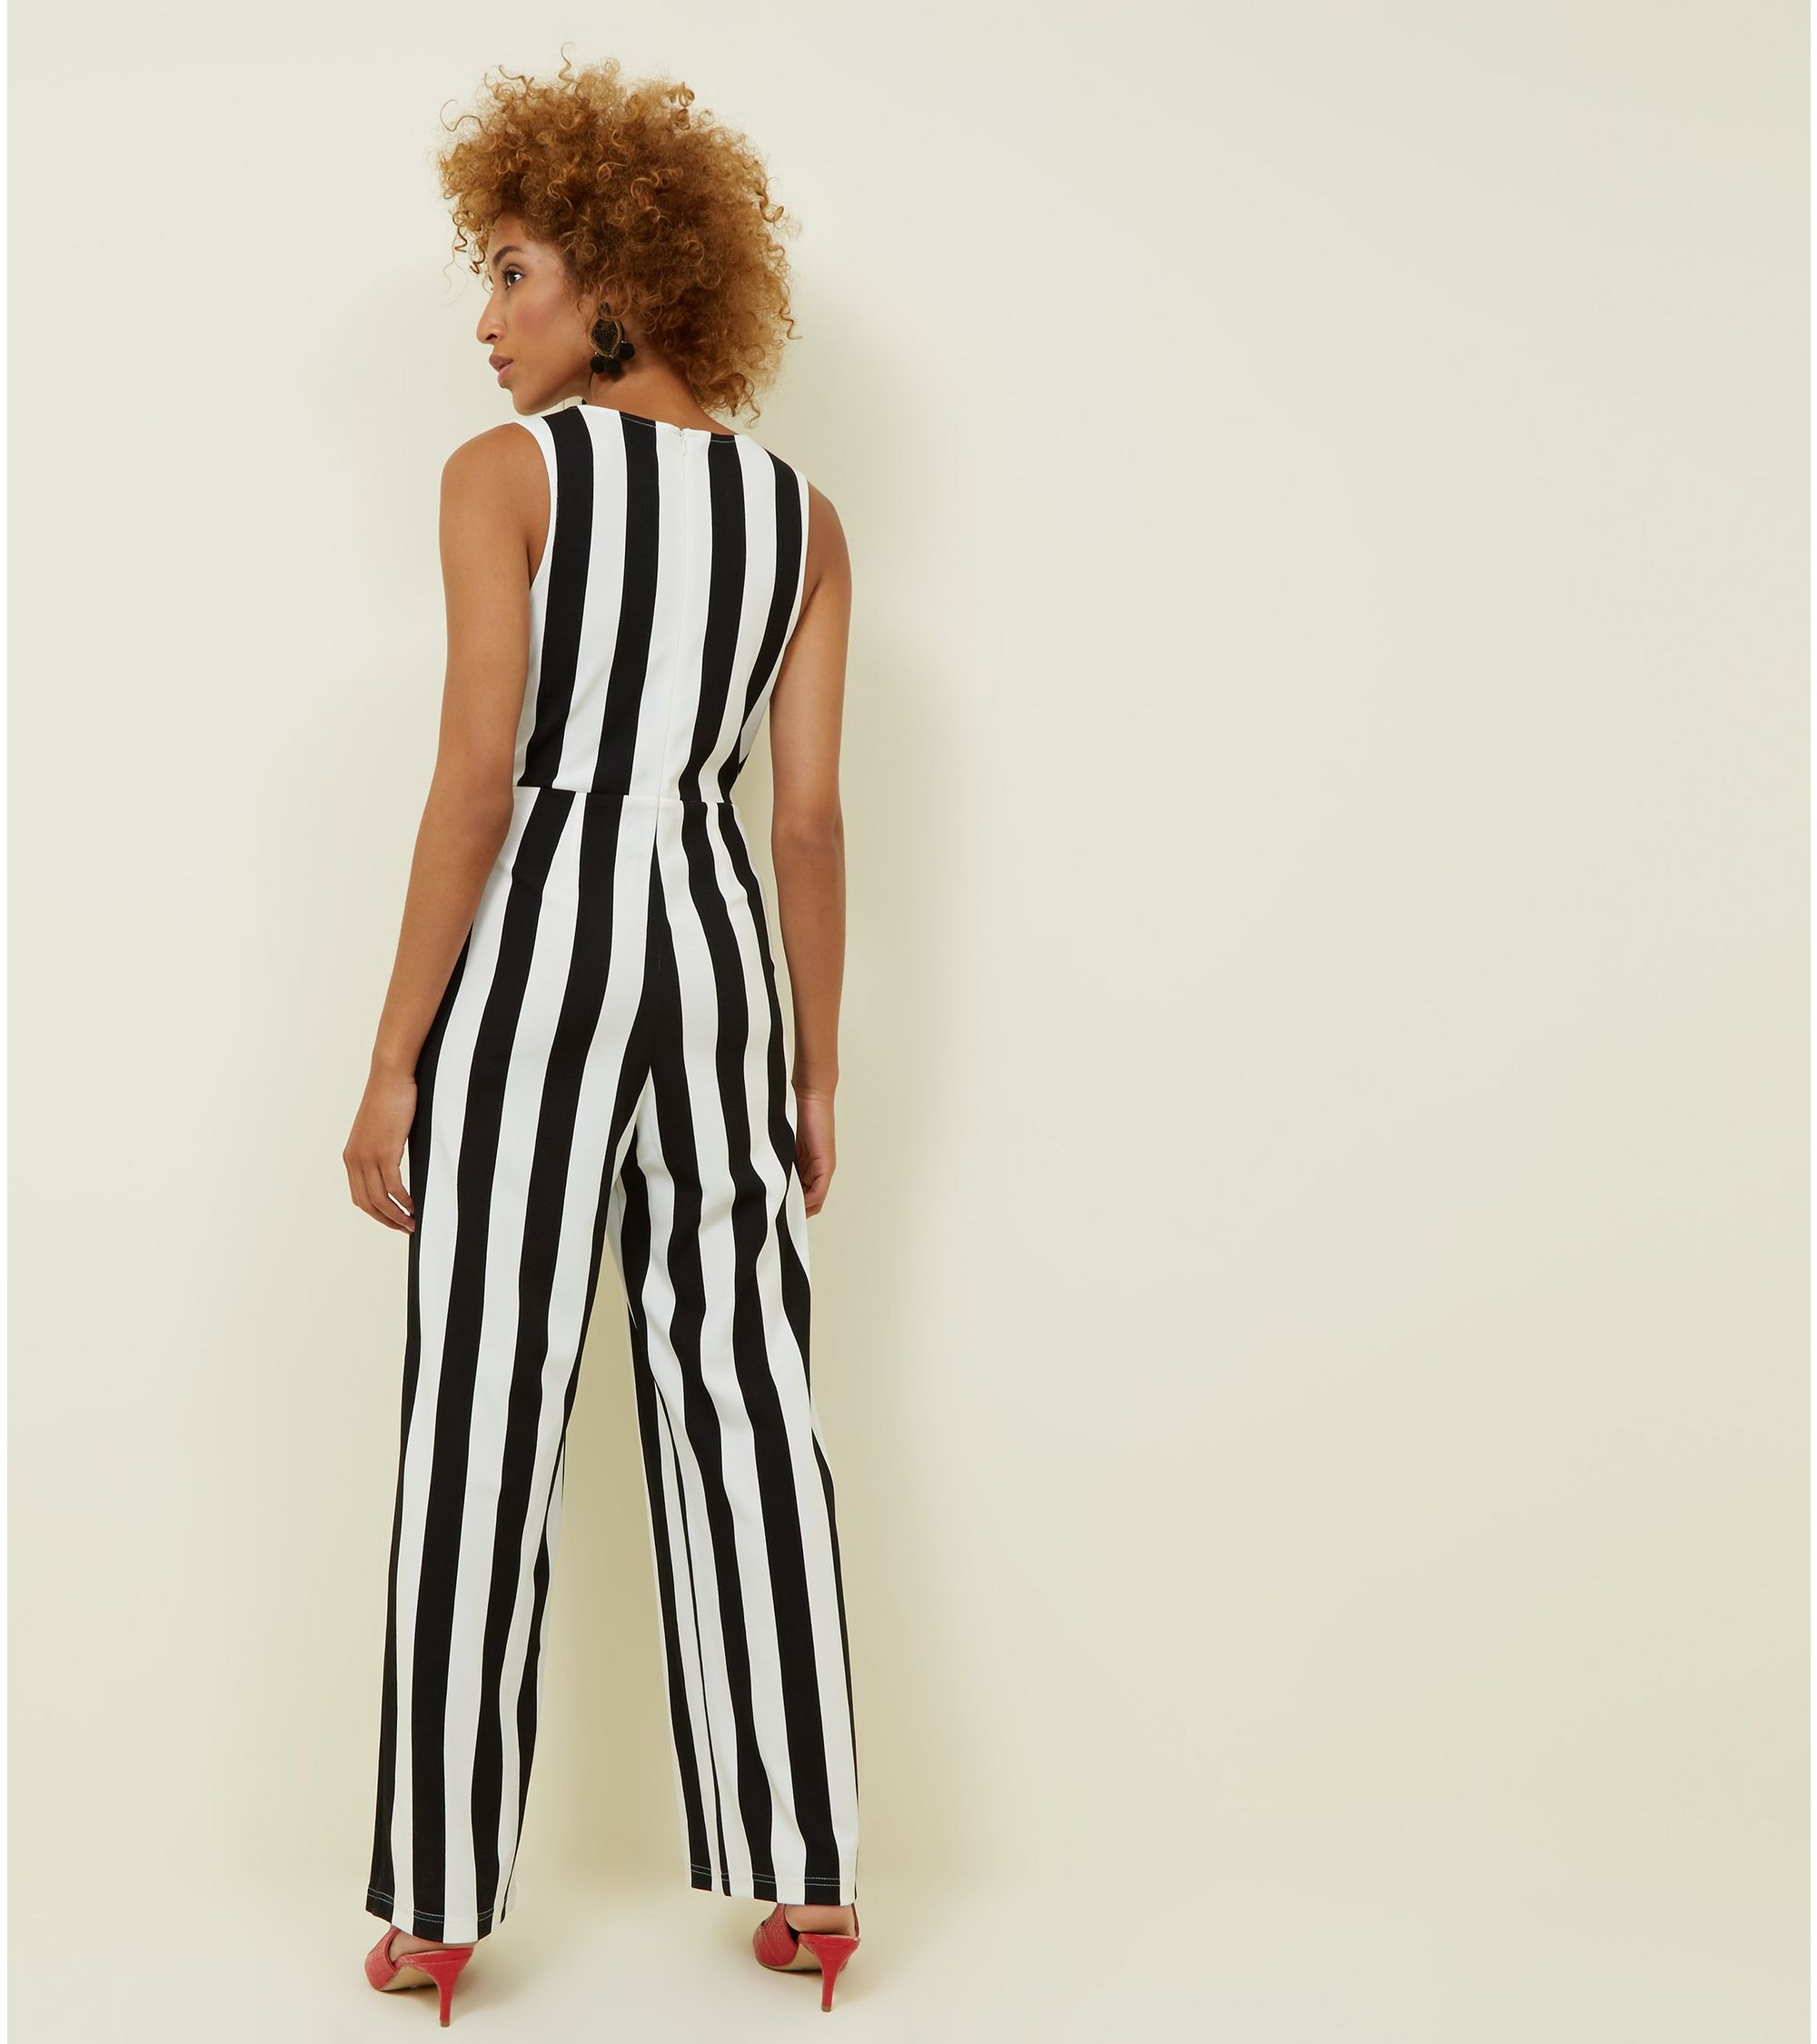 1e783a6987f8 New Look Cameo Rose Black Stripe Button Side Jumpsuit at £10